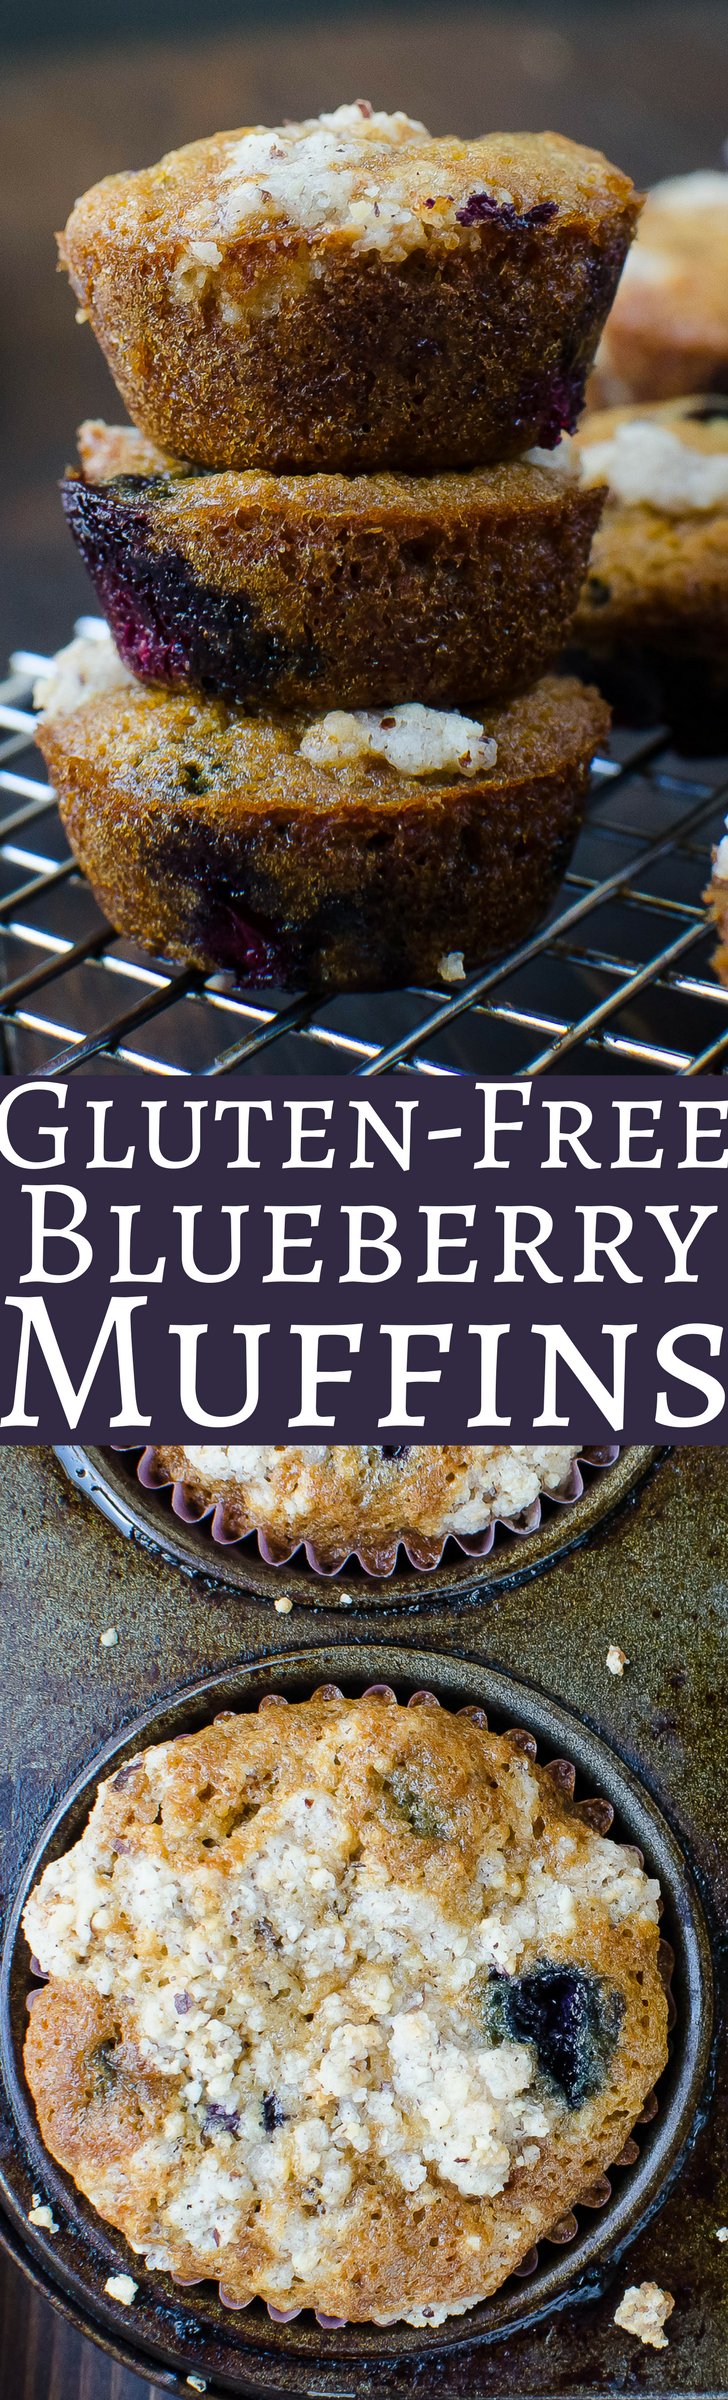 Need a foolproof gluten free blueberry muffin recipe? This one is loaded with blueberries and a yummy streusel topping. #blueberrymuffins #glutenfree #muffins #christmasbreakfast #breakfastmuffins #brunch #christmasbrunch #healthymuffins #breakfastbread #healthyblueberrymuffins #paleo #glutenfreemuffins